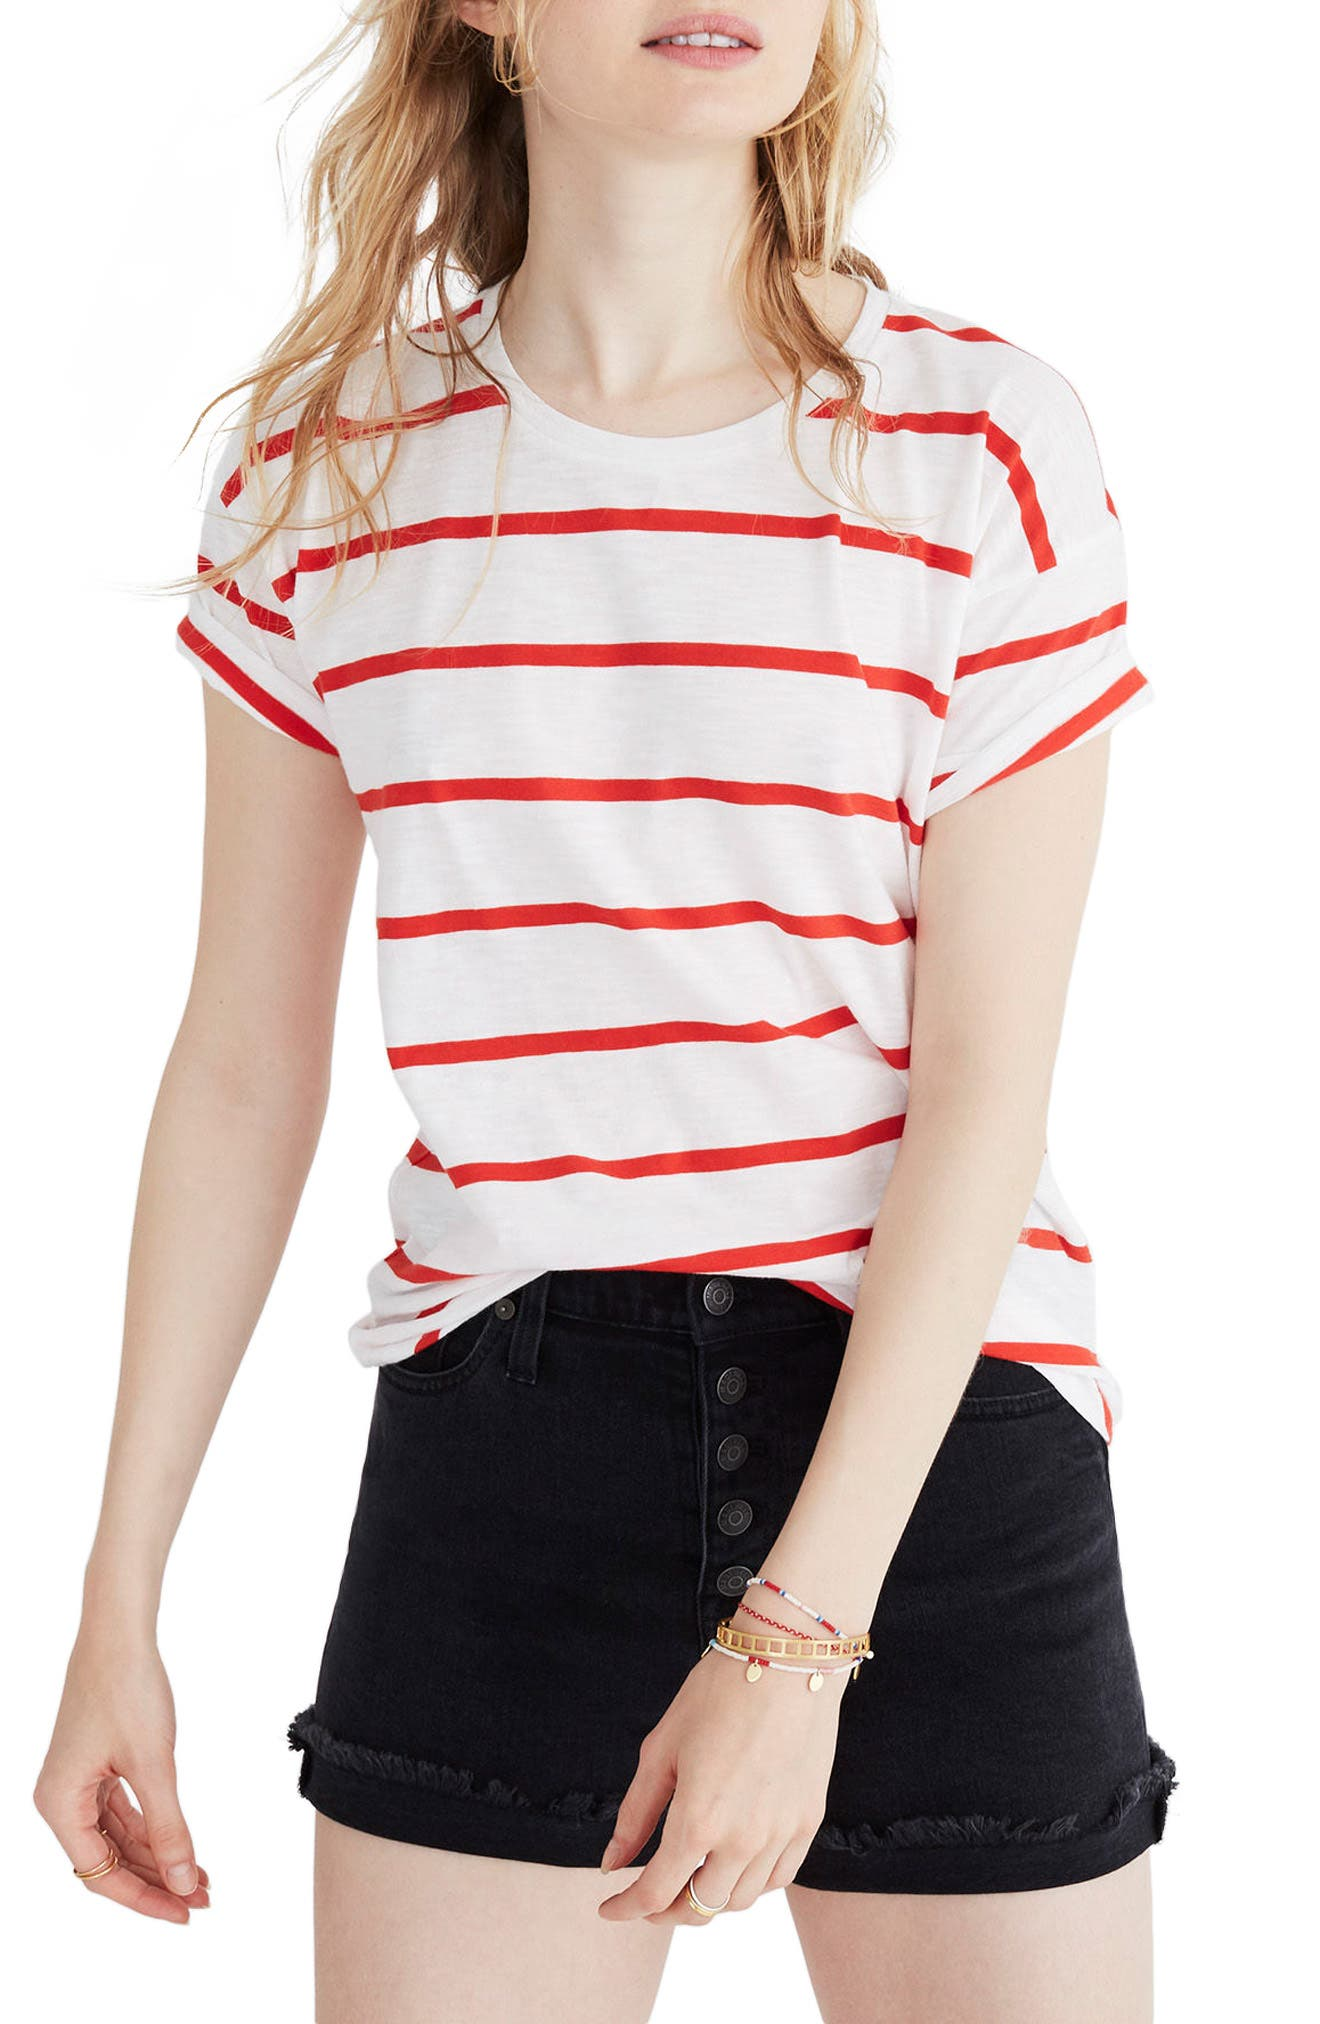 Whisper Cotton Crewneck Tee,                             Main thumbnail 1, color,                             Bright Ivory/ Red